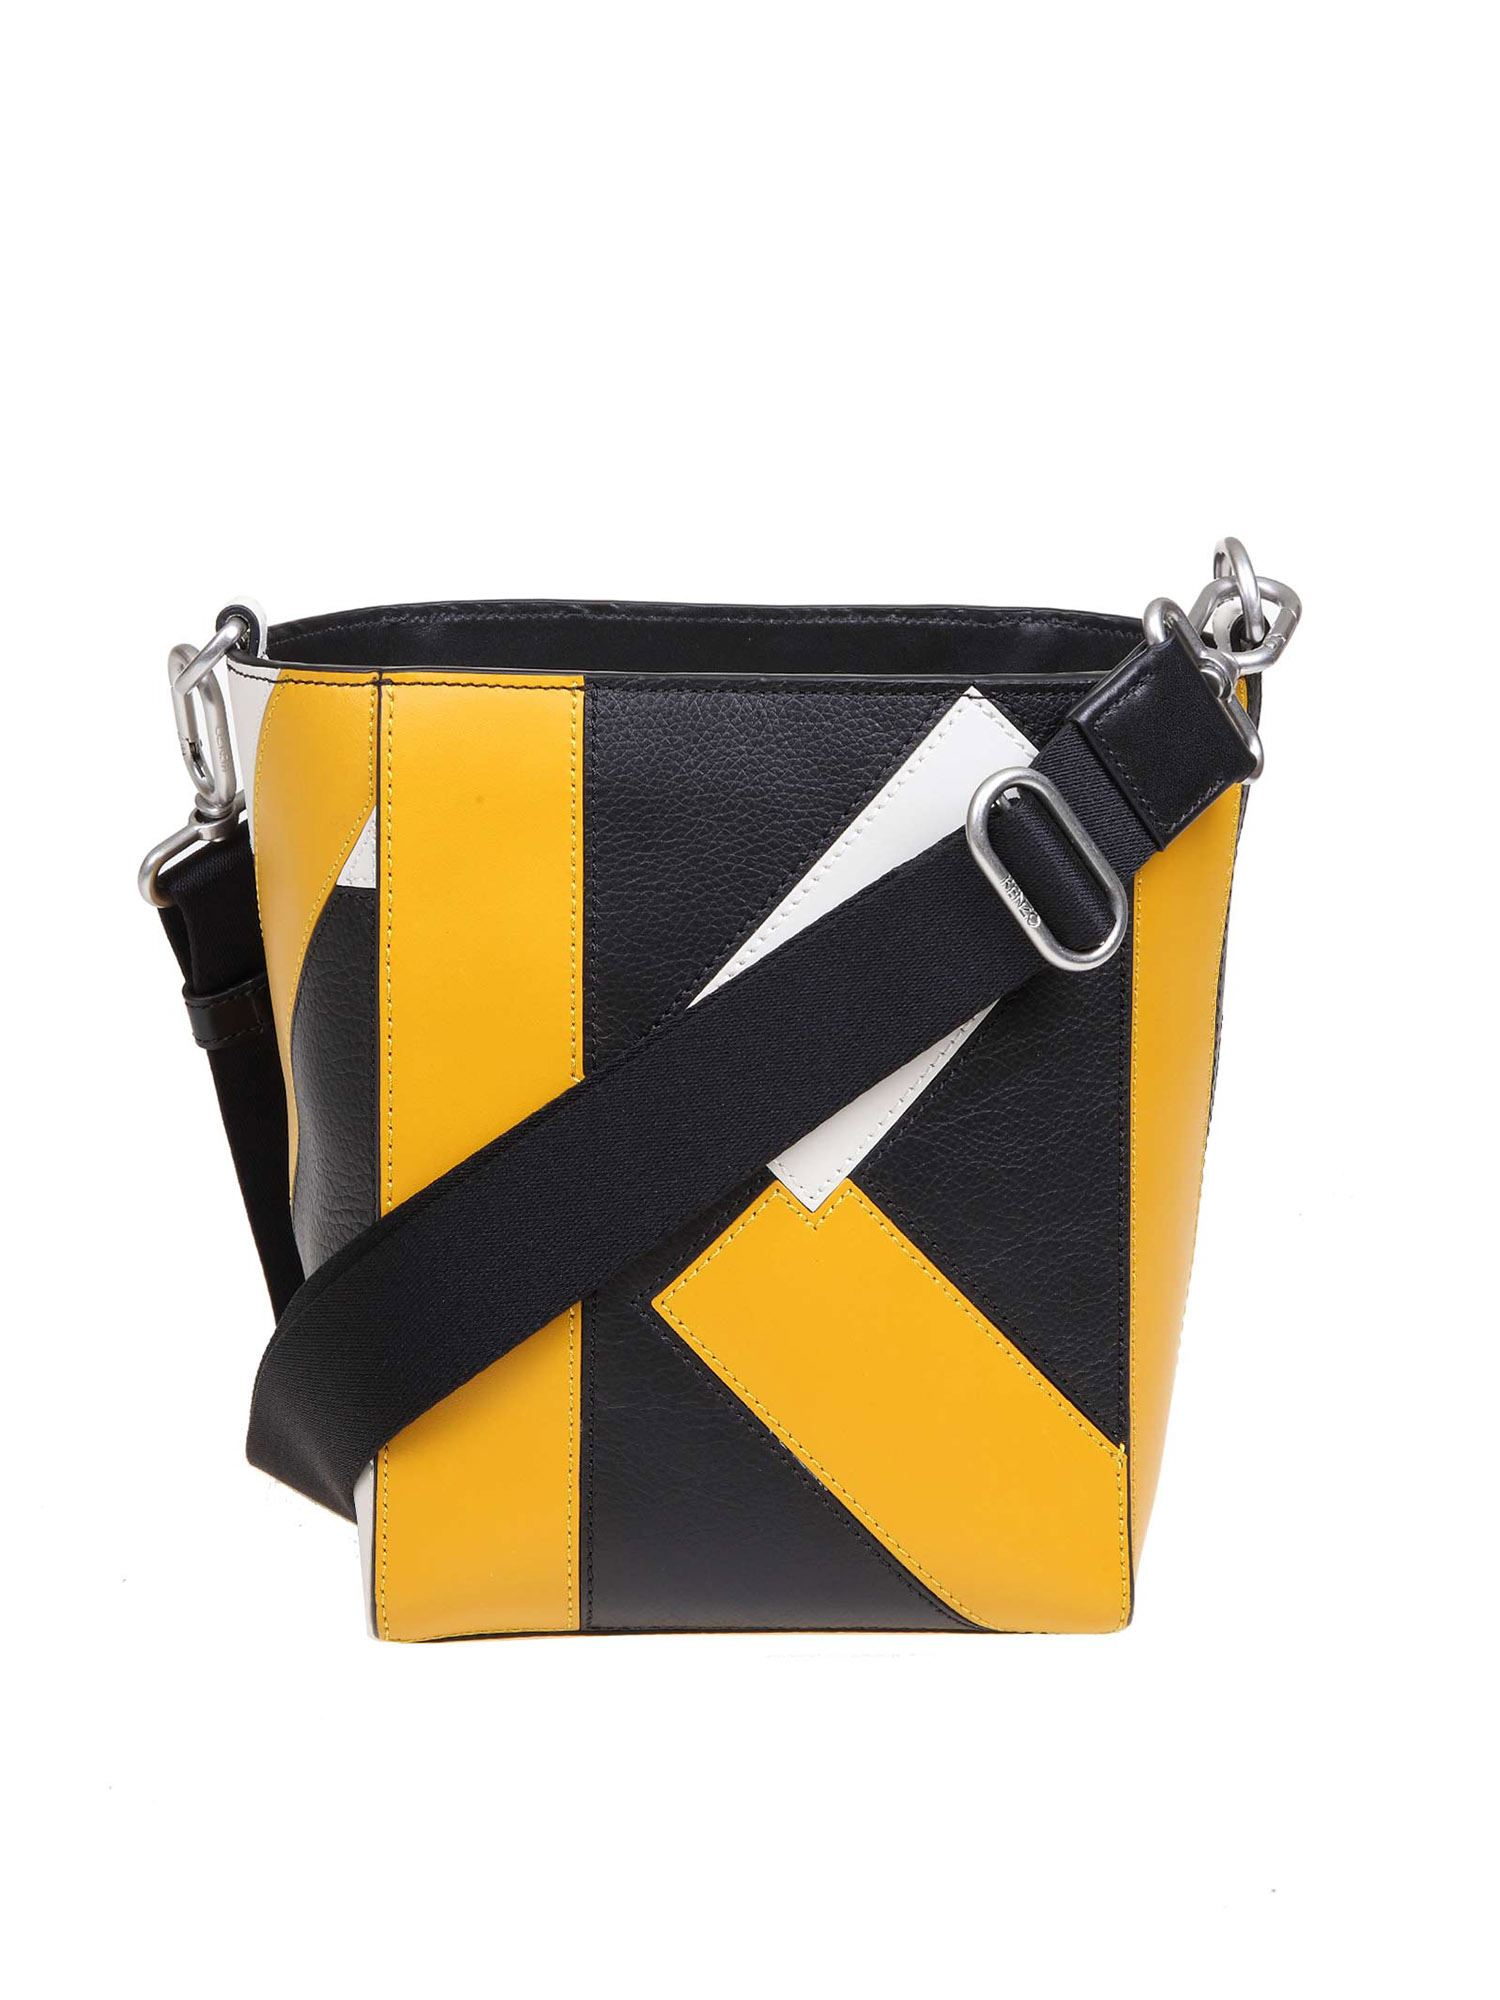 Kenzo KUBE SMALL SHOULDER BAG IN BLACK AND YELLOW